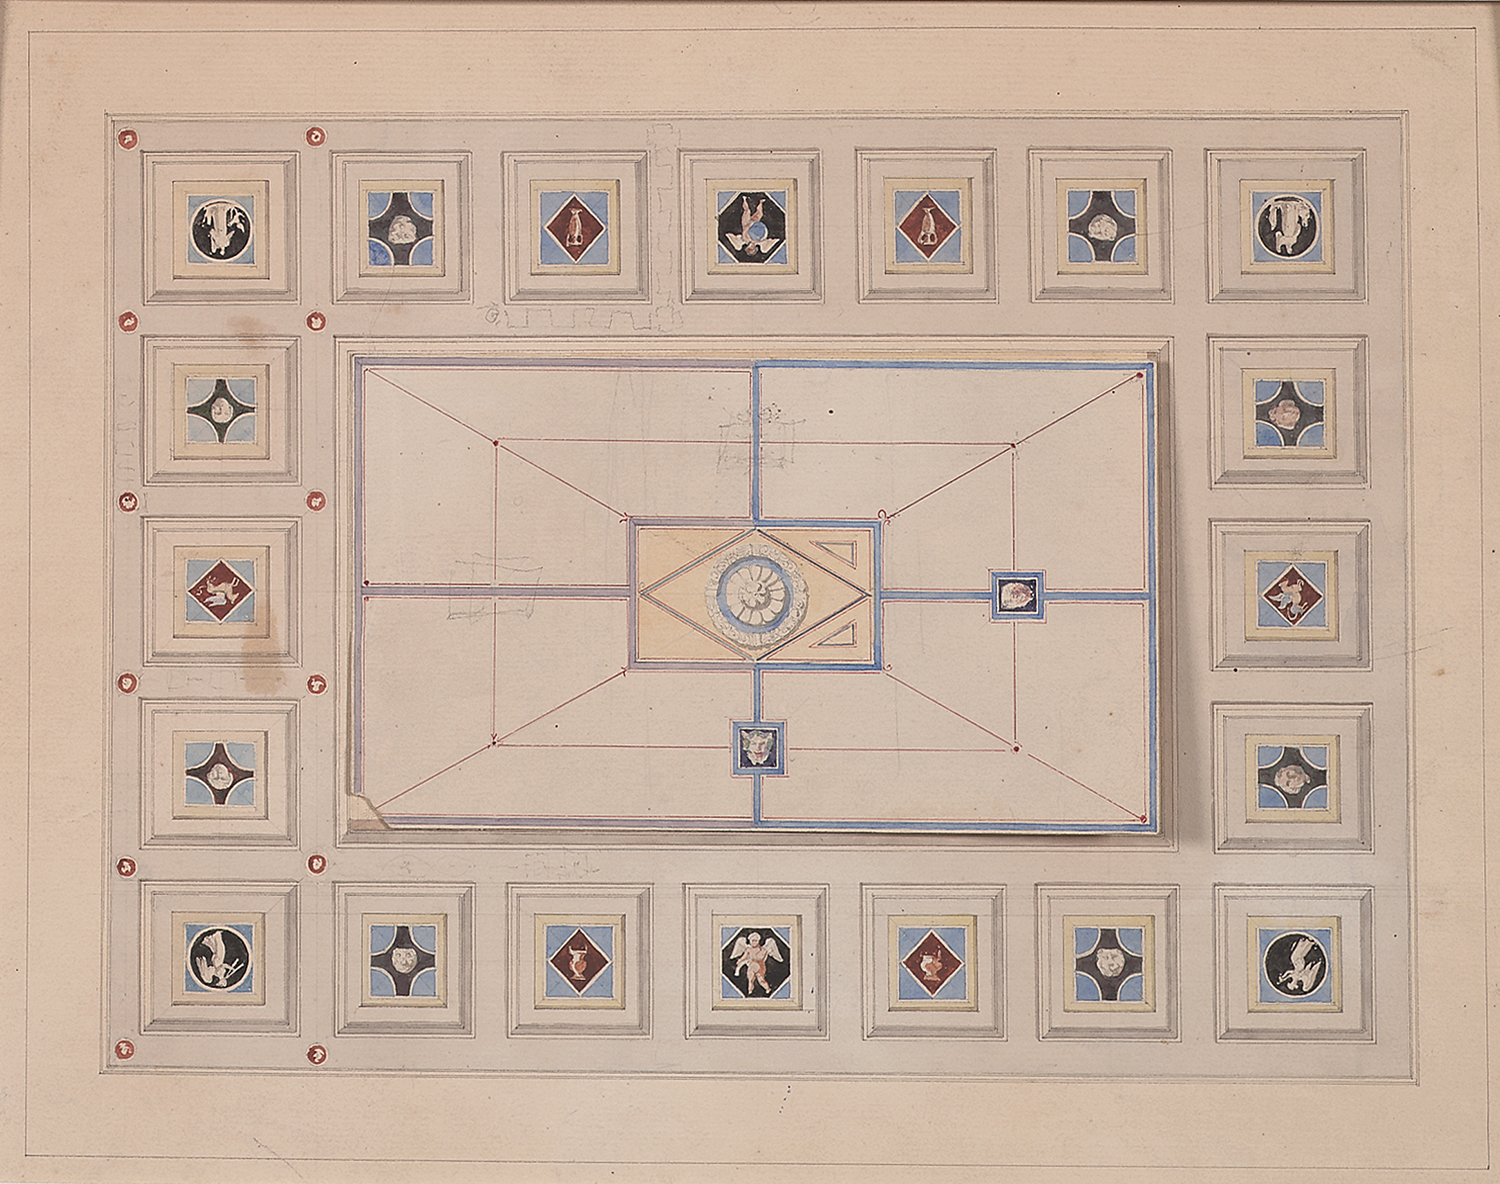 """French, late 19th century, Coffered Ceiling Design, pencil, ink, bistre and watercolor on paper,15 1/2 x 18 1/4"""" matted"""